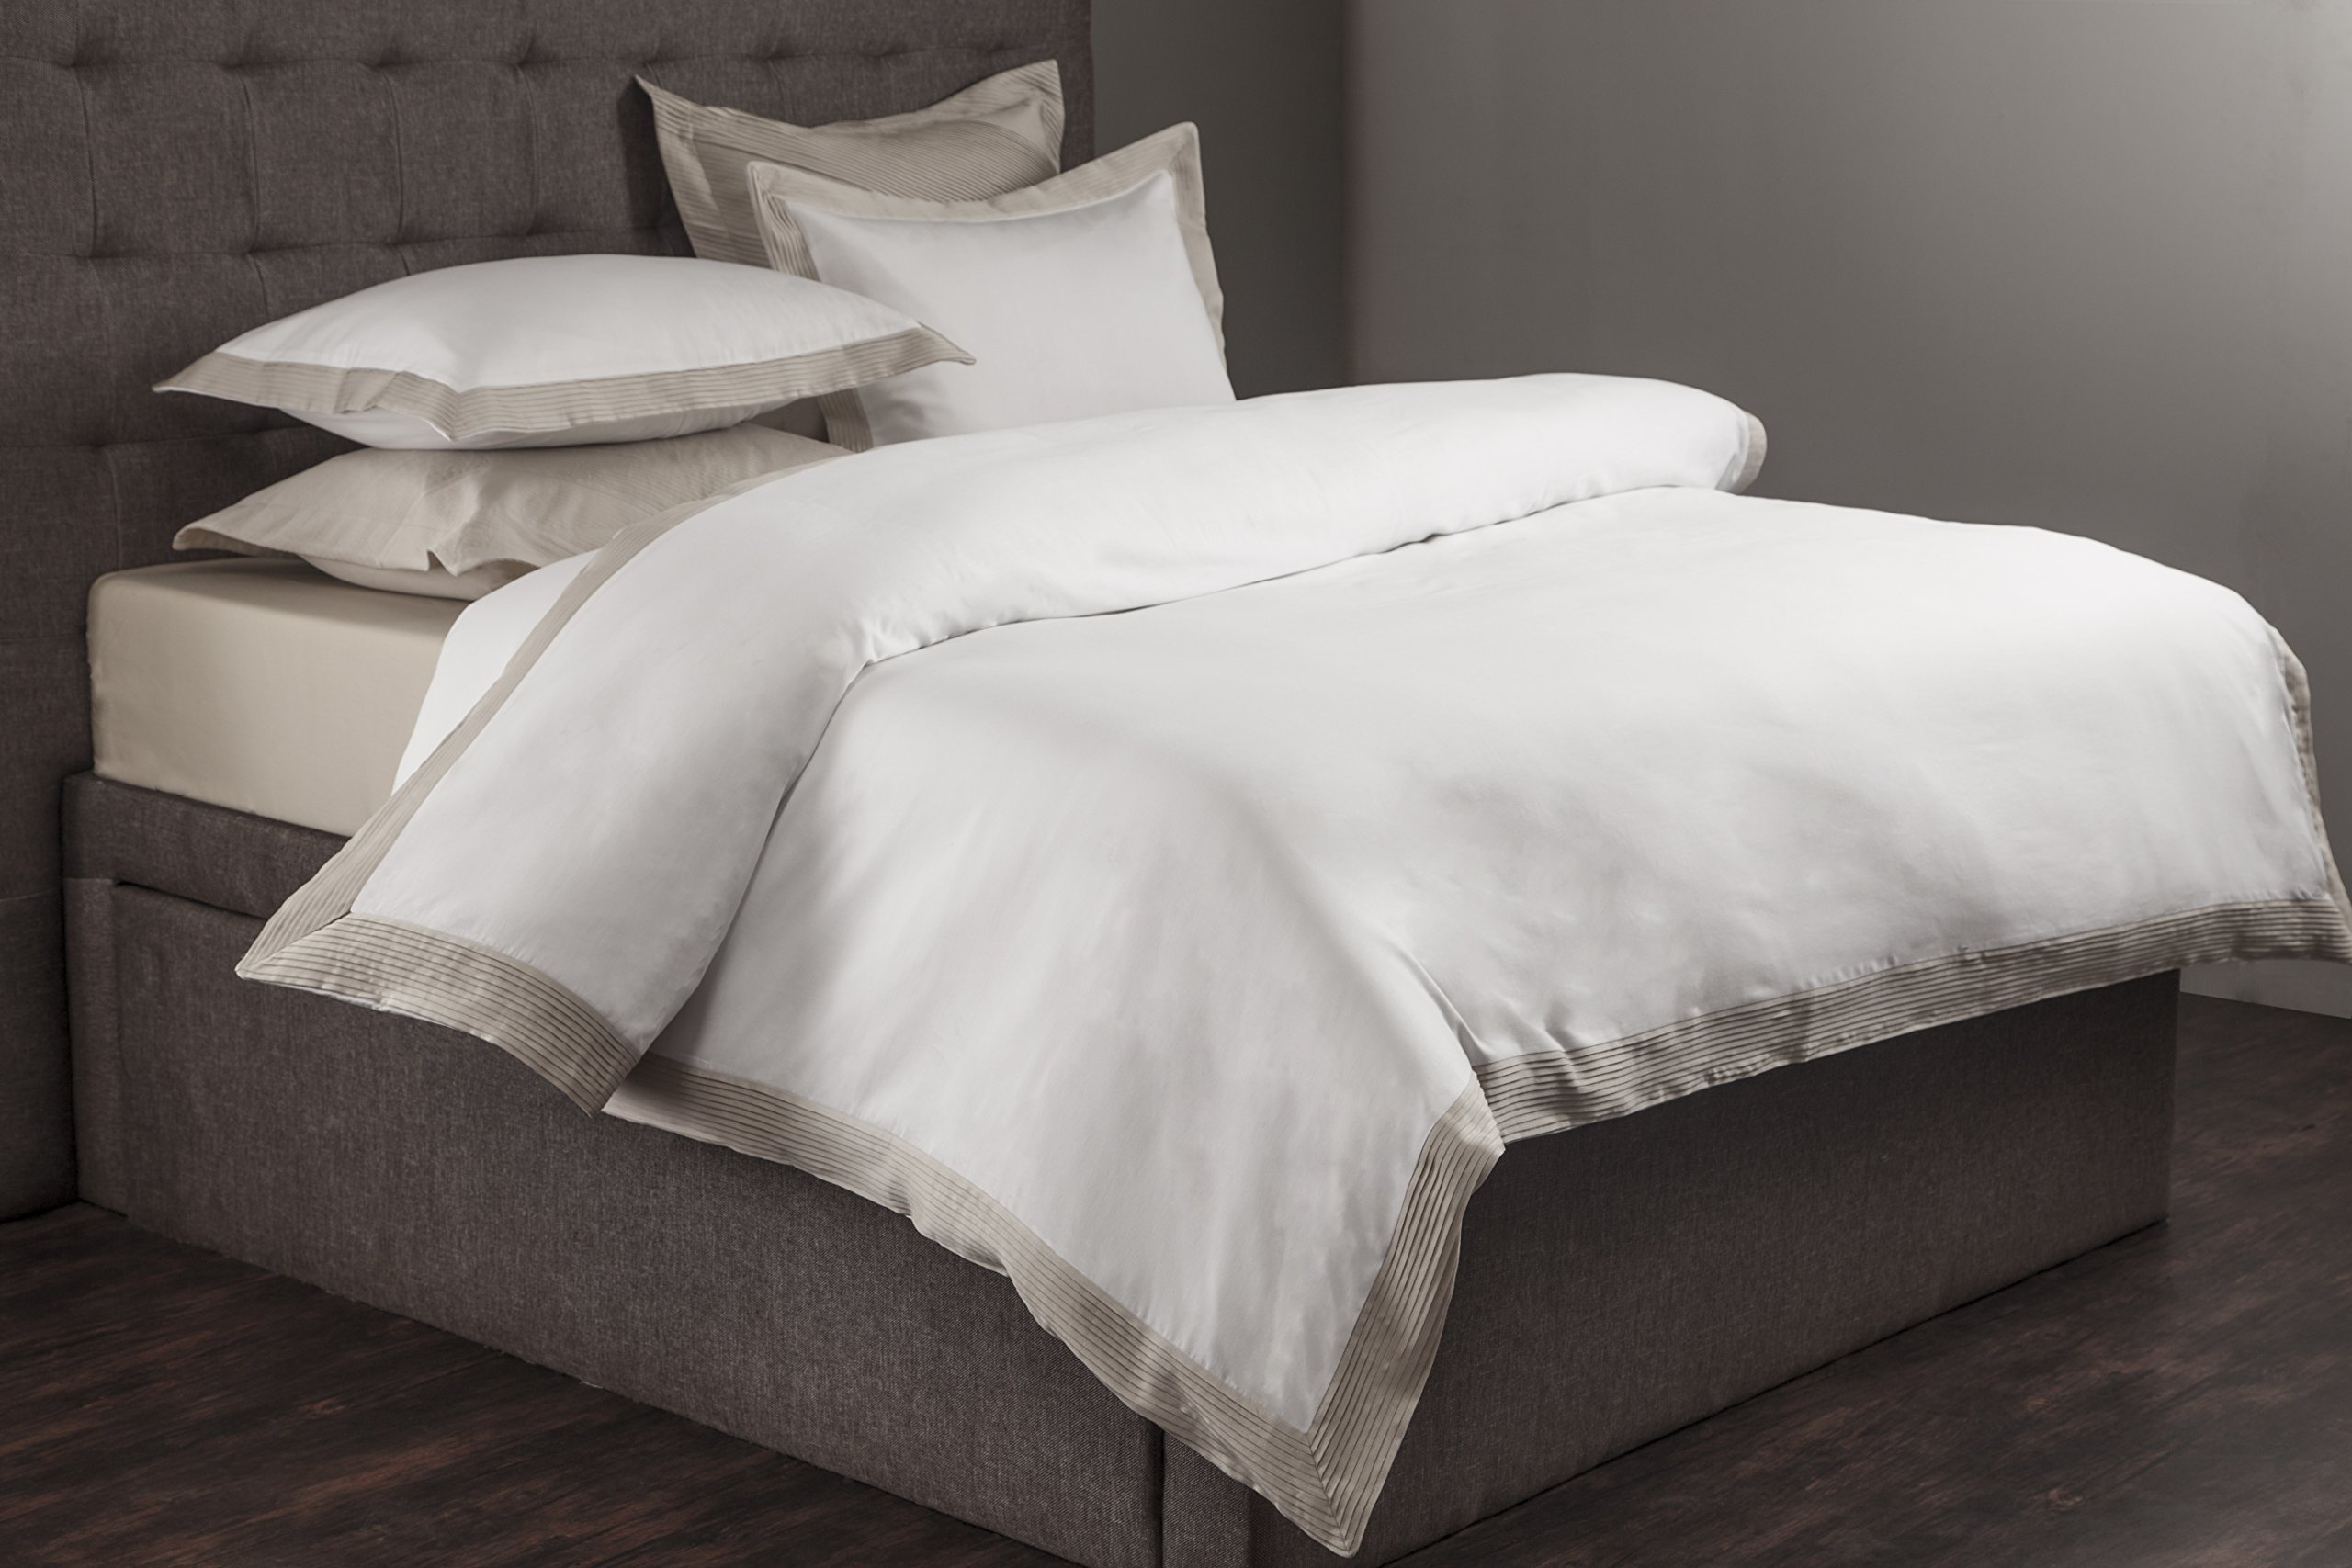 MORGAN DUVET COVER SET (King, White/Champagne)